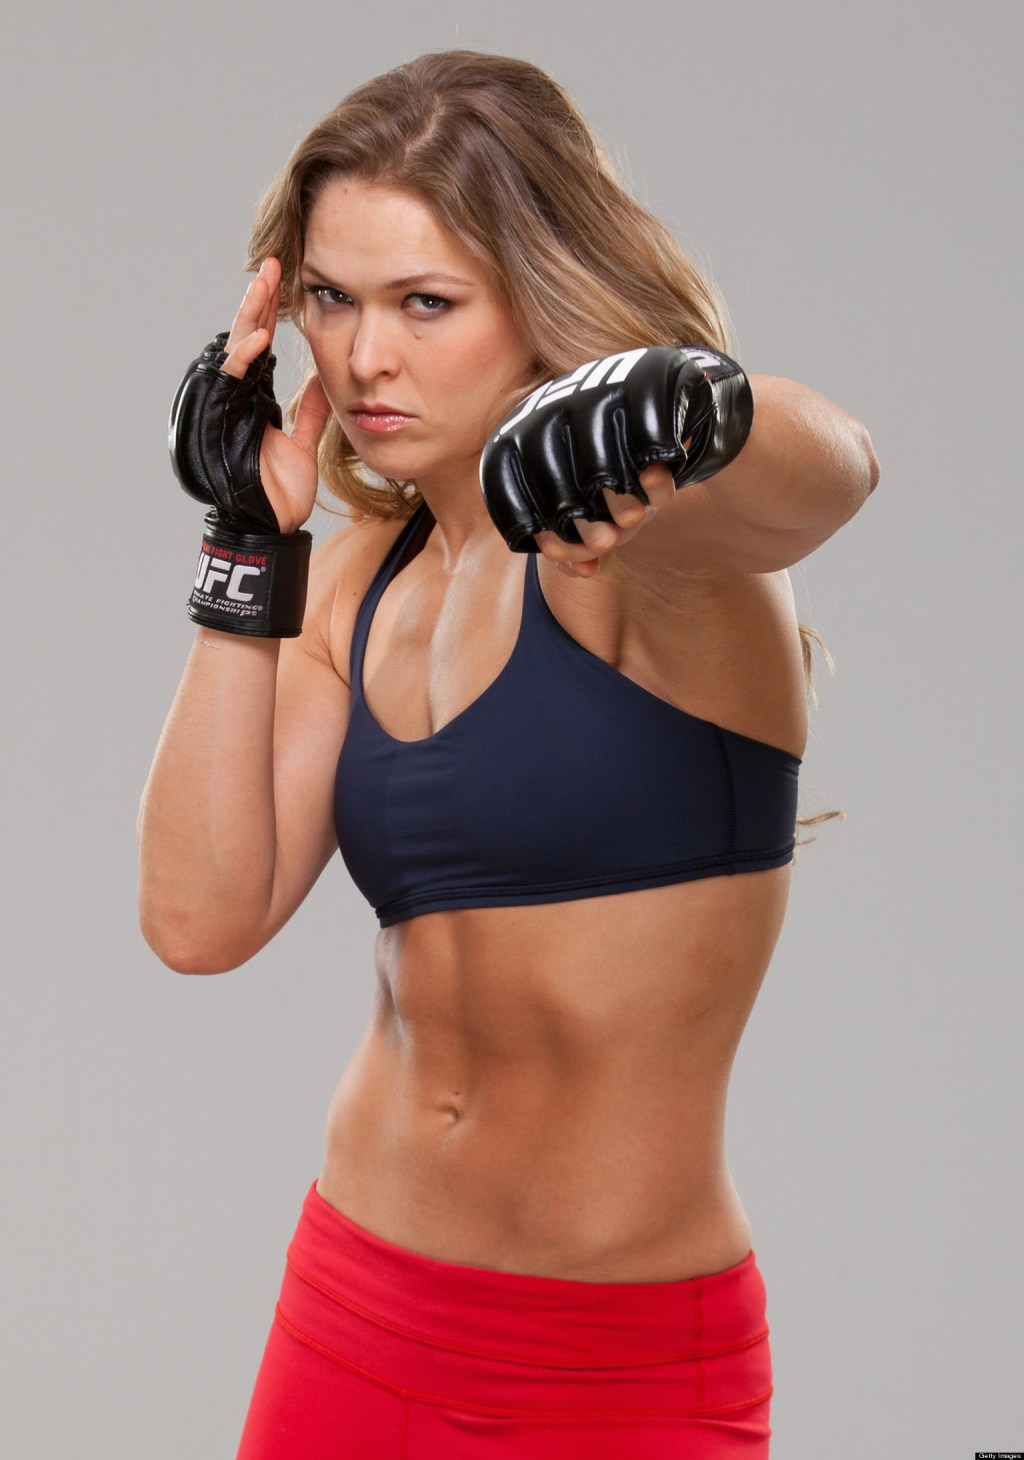 Ronda Rousey - Leaked Celebrity Photos Online